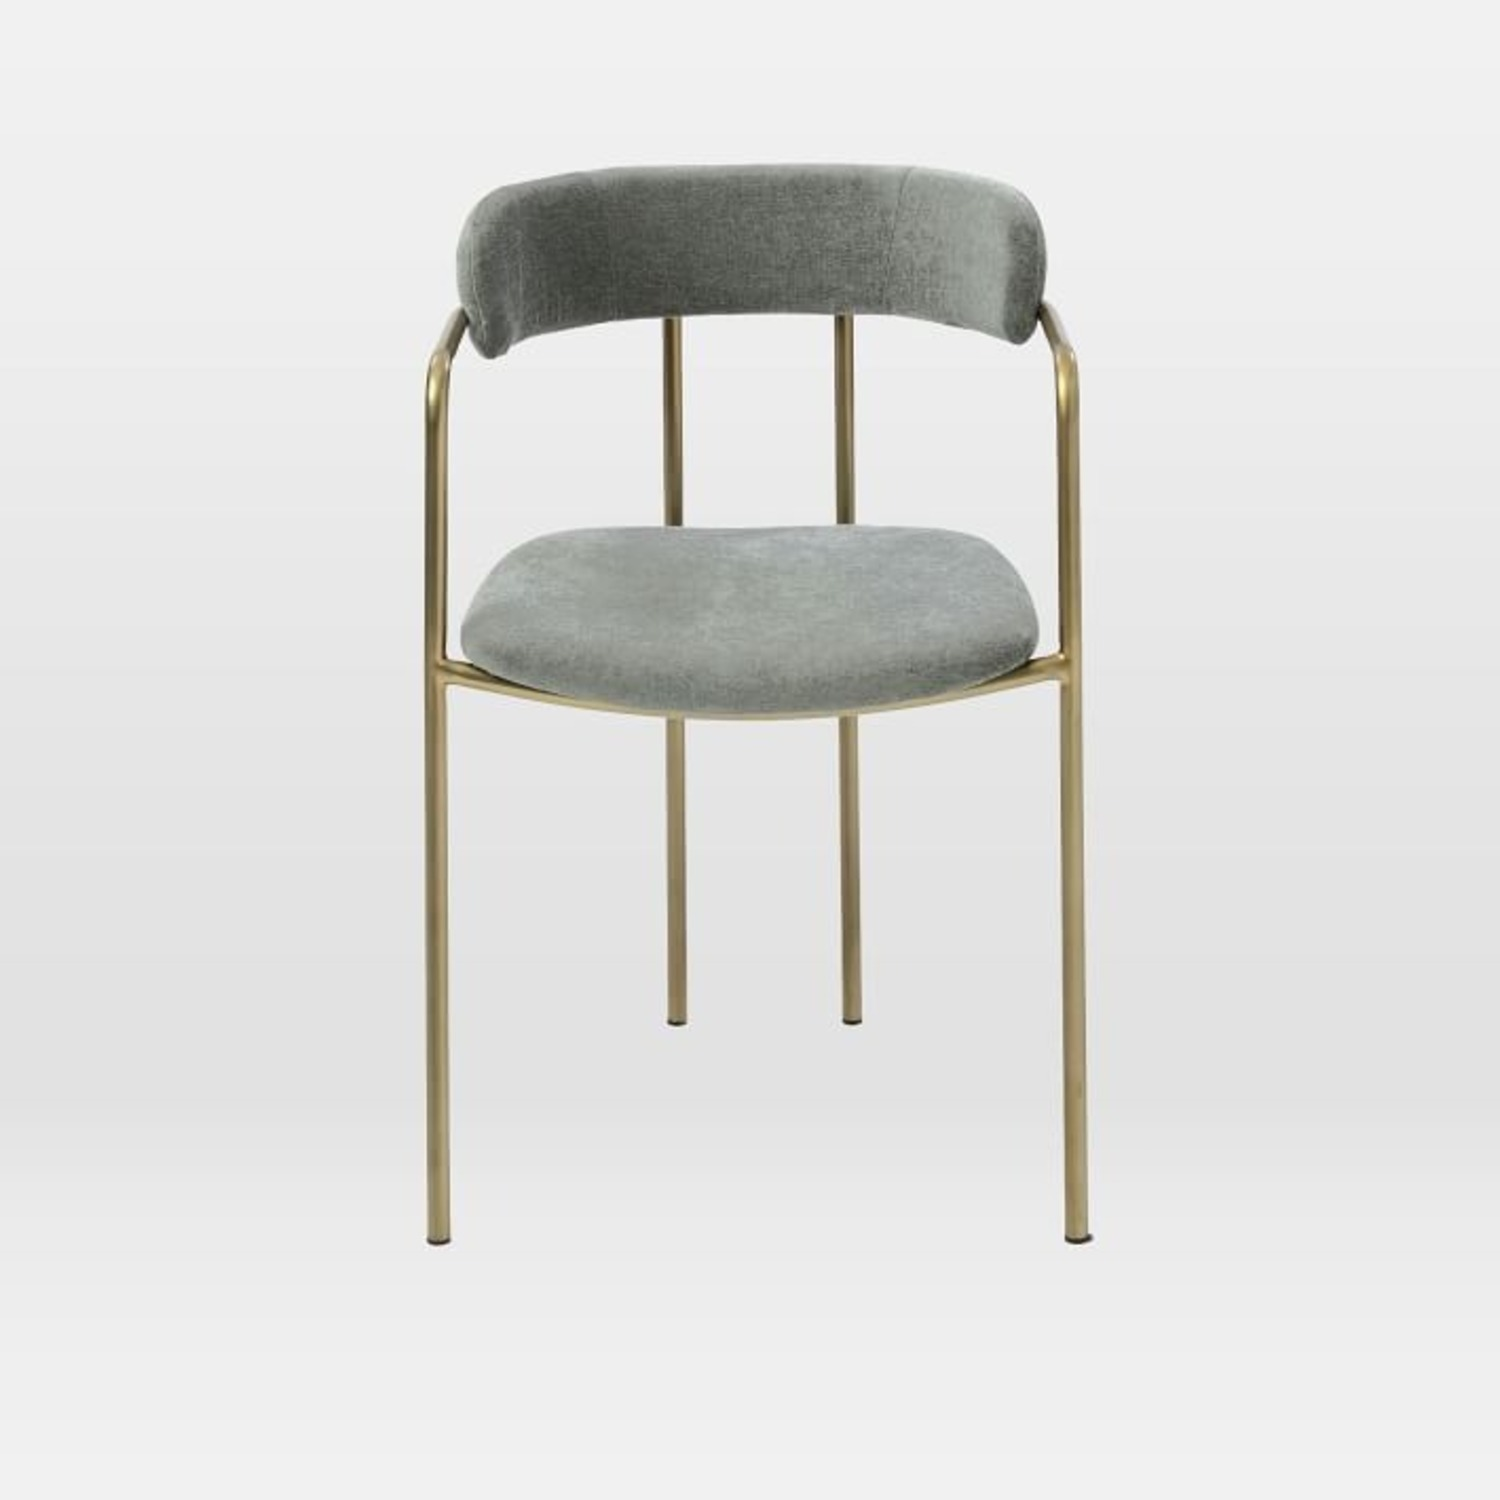 West Elm Lenox Upholstered Dining Chair - image-3